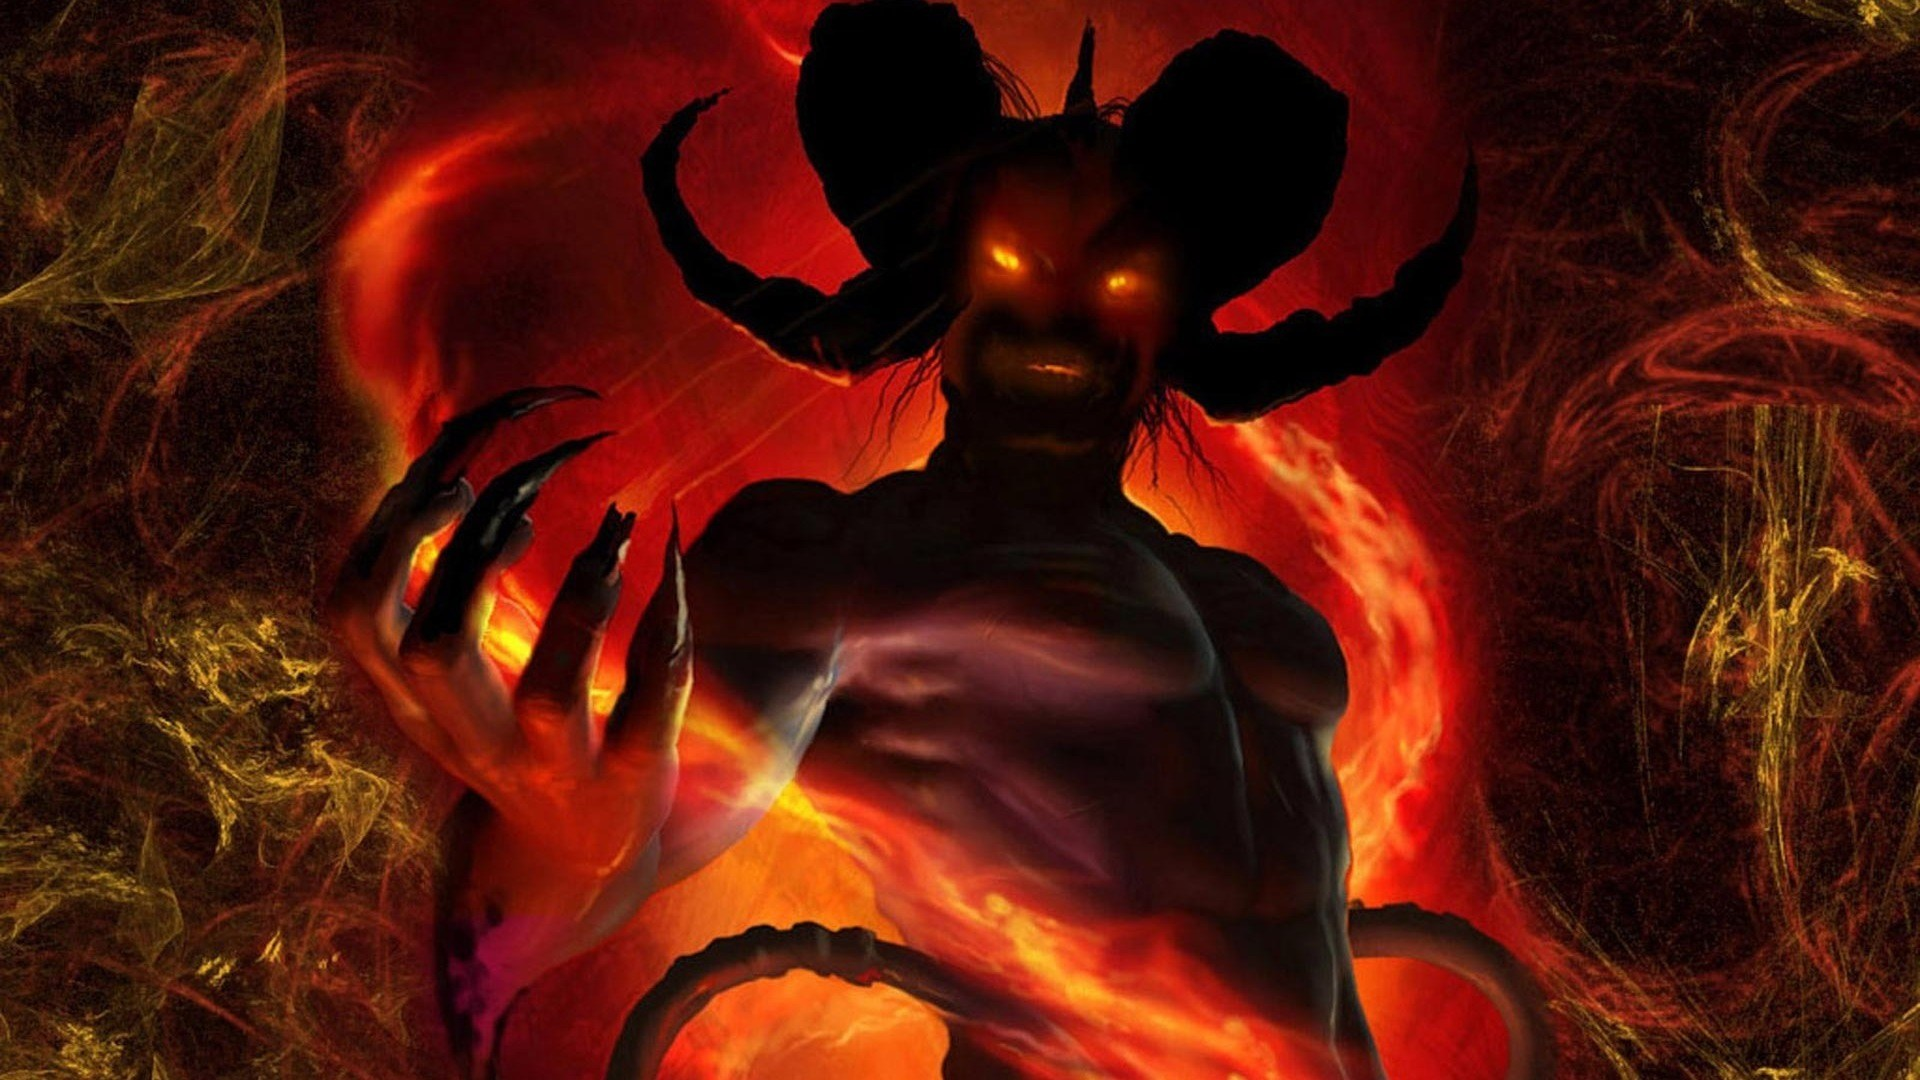 Devil: From Latin 'Diaballein' meaning 'to throw accross